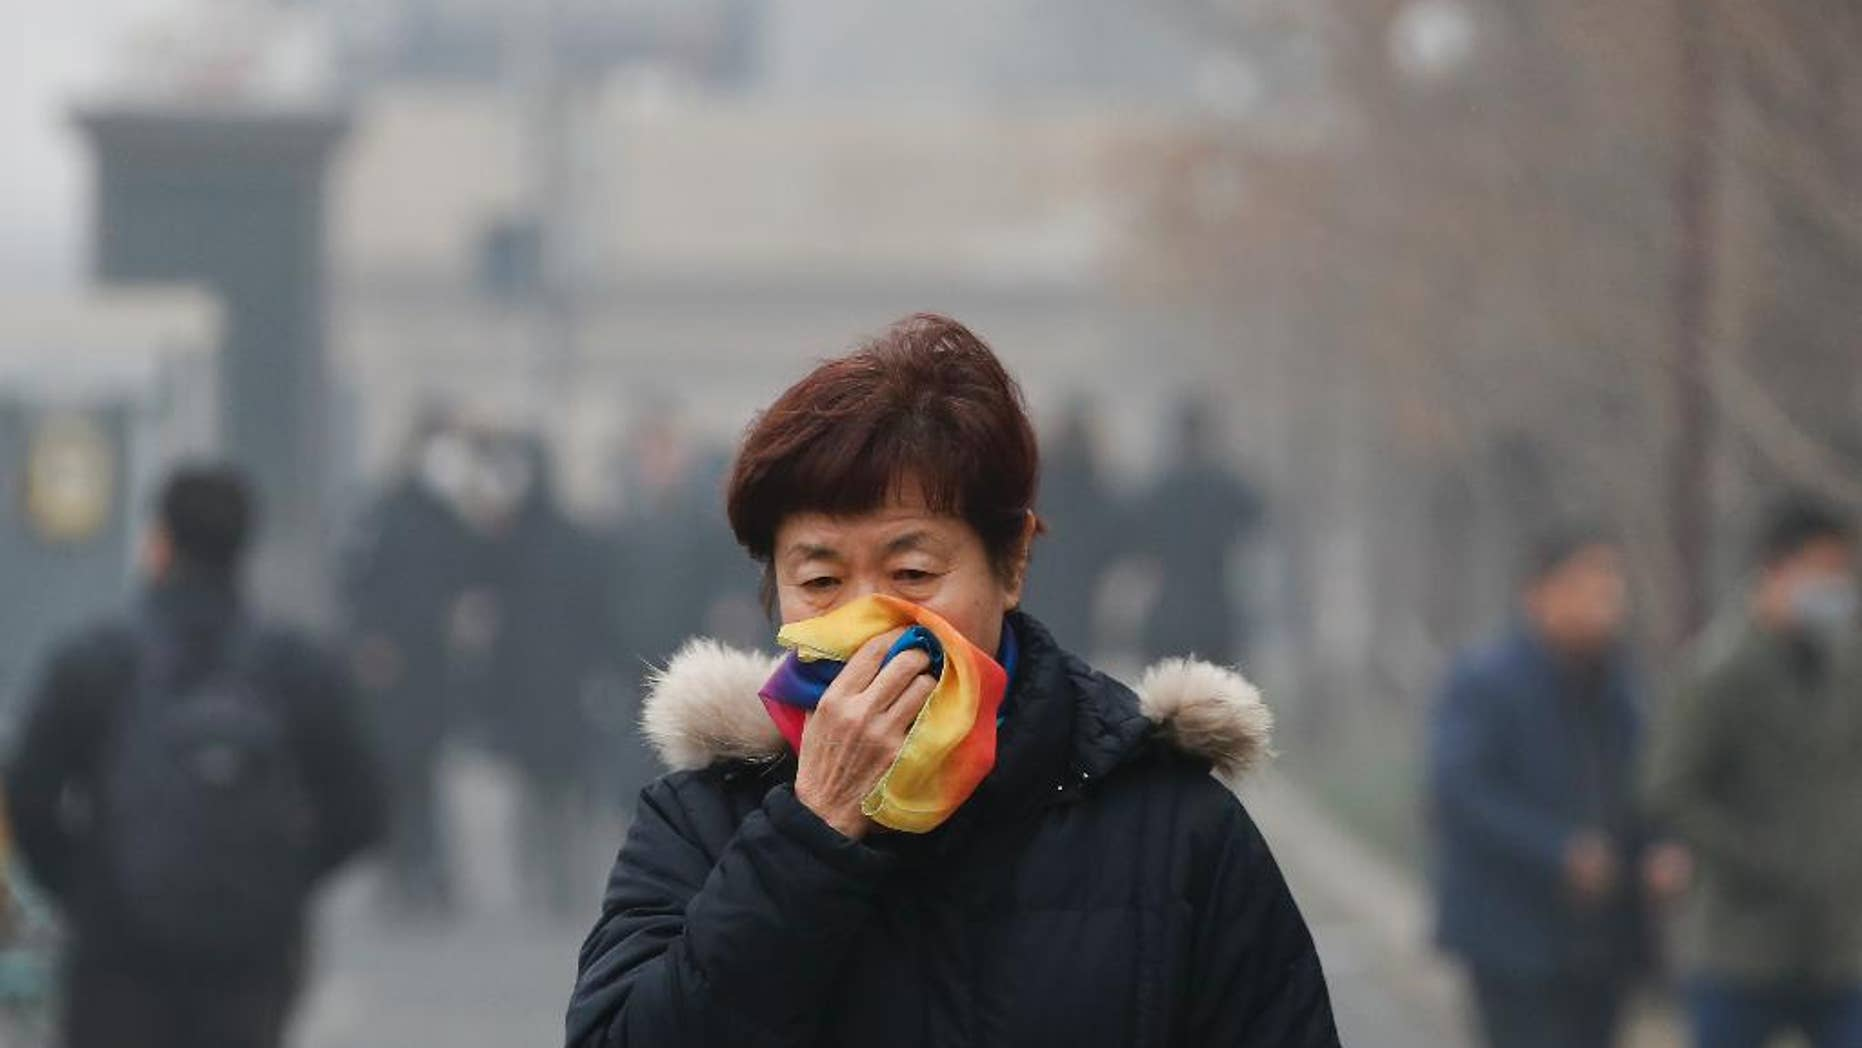 FILE - In this Tuesday, Dec. 20, 2016, file photo, a woman uses a scarf to cover her mouth for protection against the air pollution as she walks on a street in Beijing, China. Beijing will spend $2.7 billion to fight air pollution in the capital this year, state media reported Thursday. (AP Photo/Andy Wong, File)